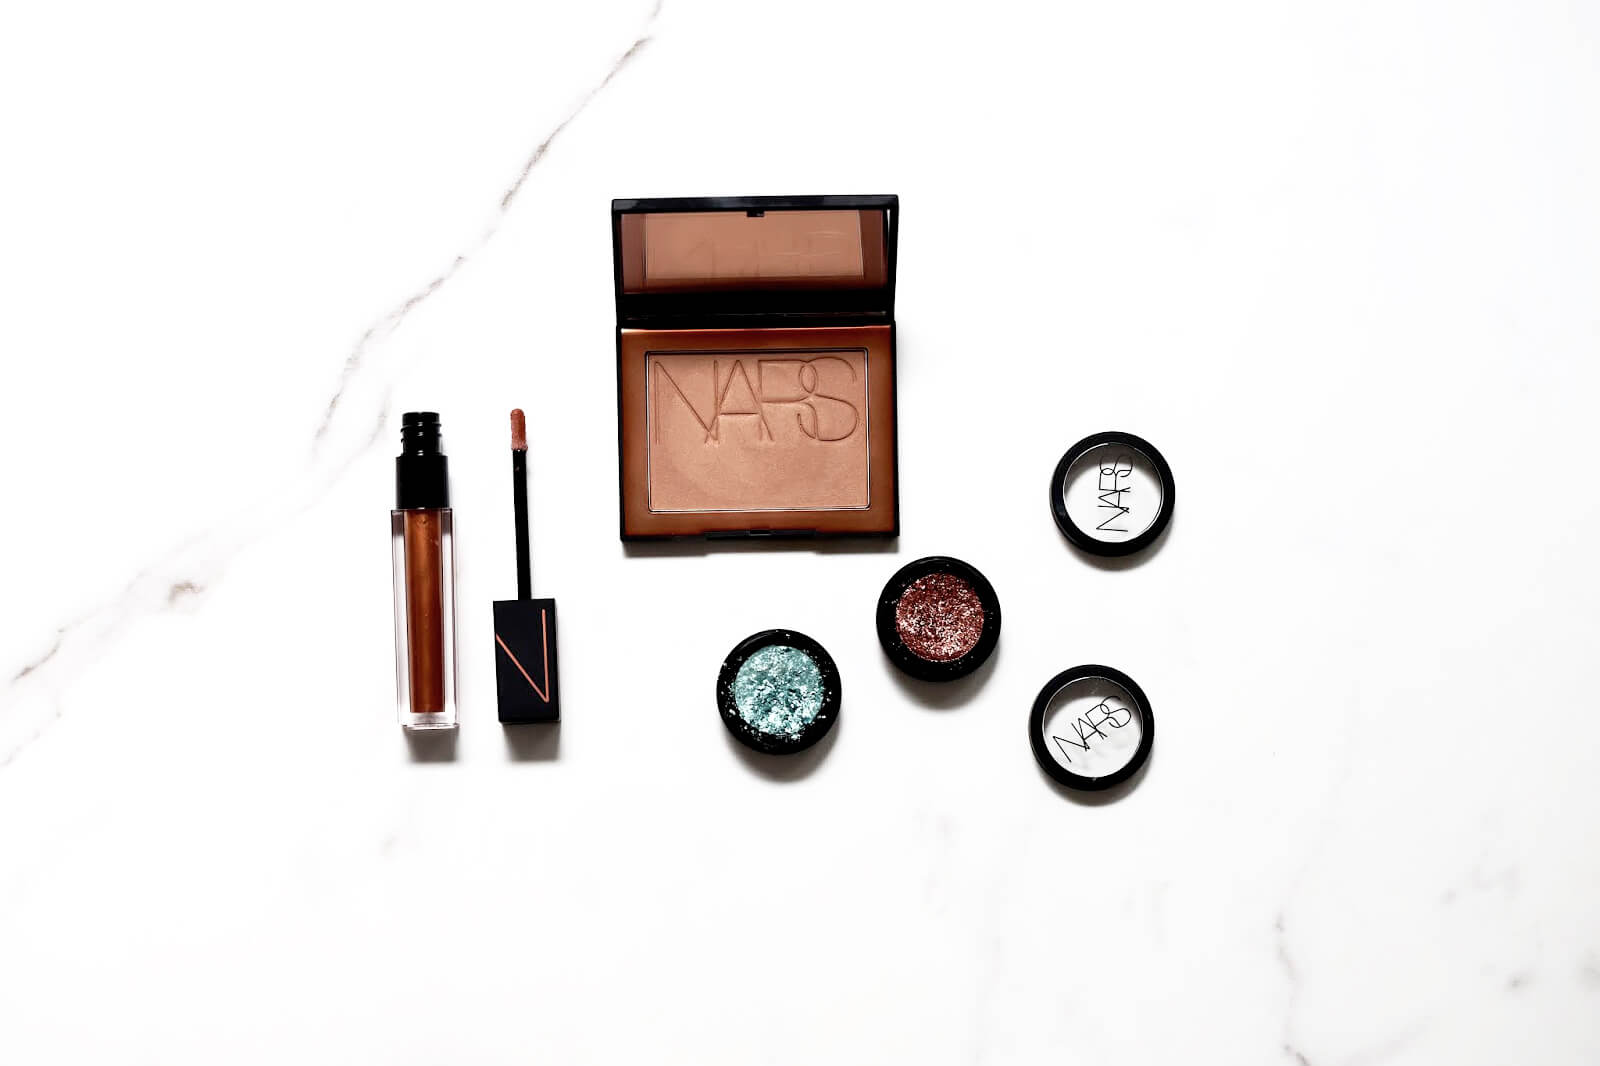 Nars Maquillage été 2020 test